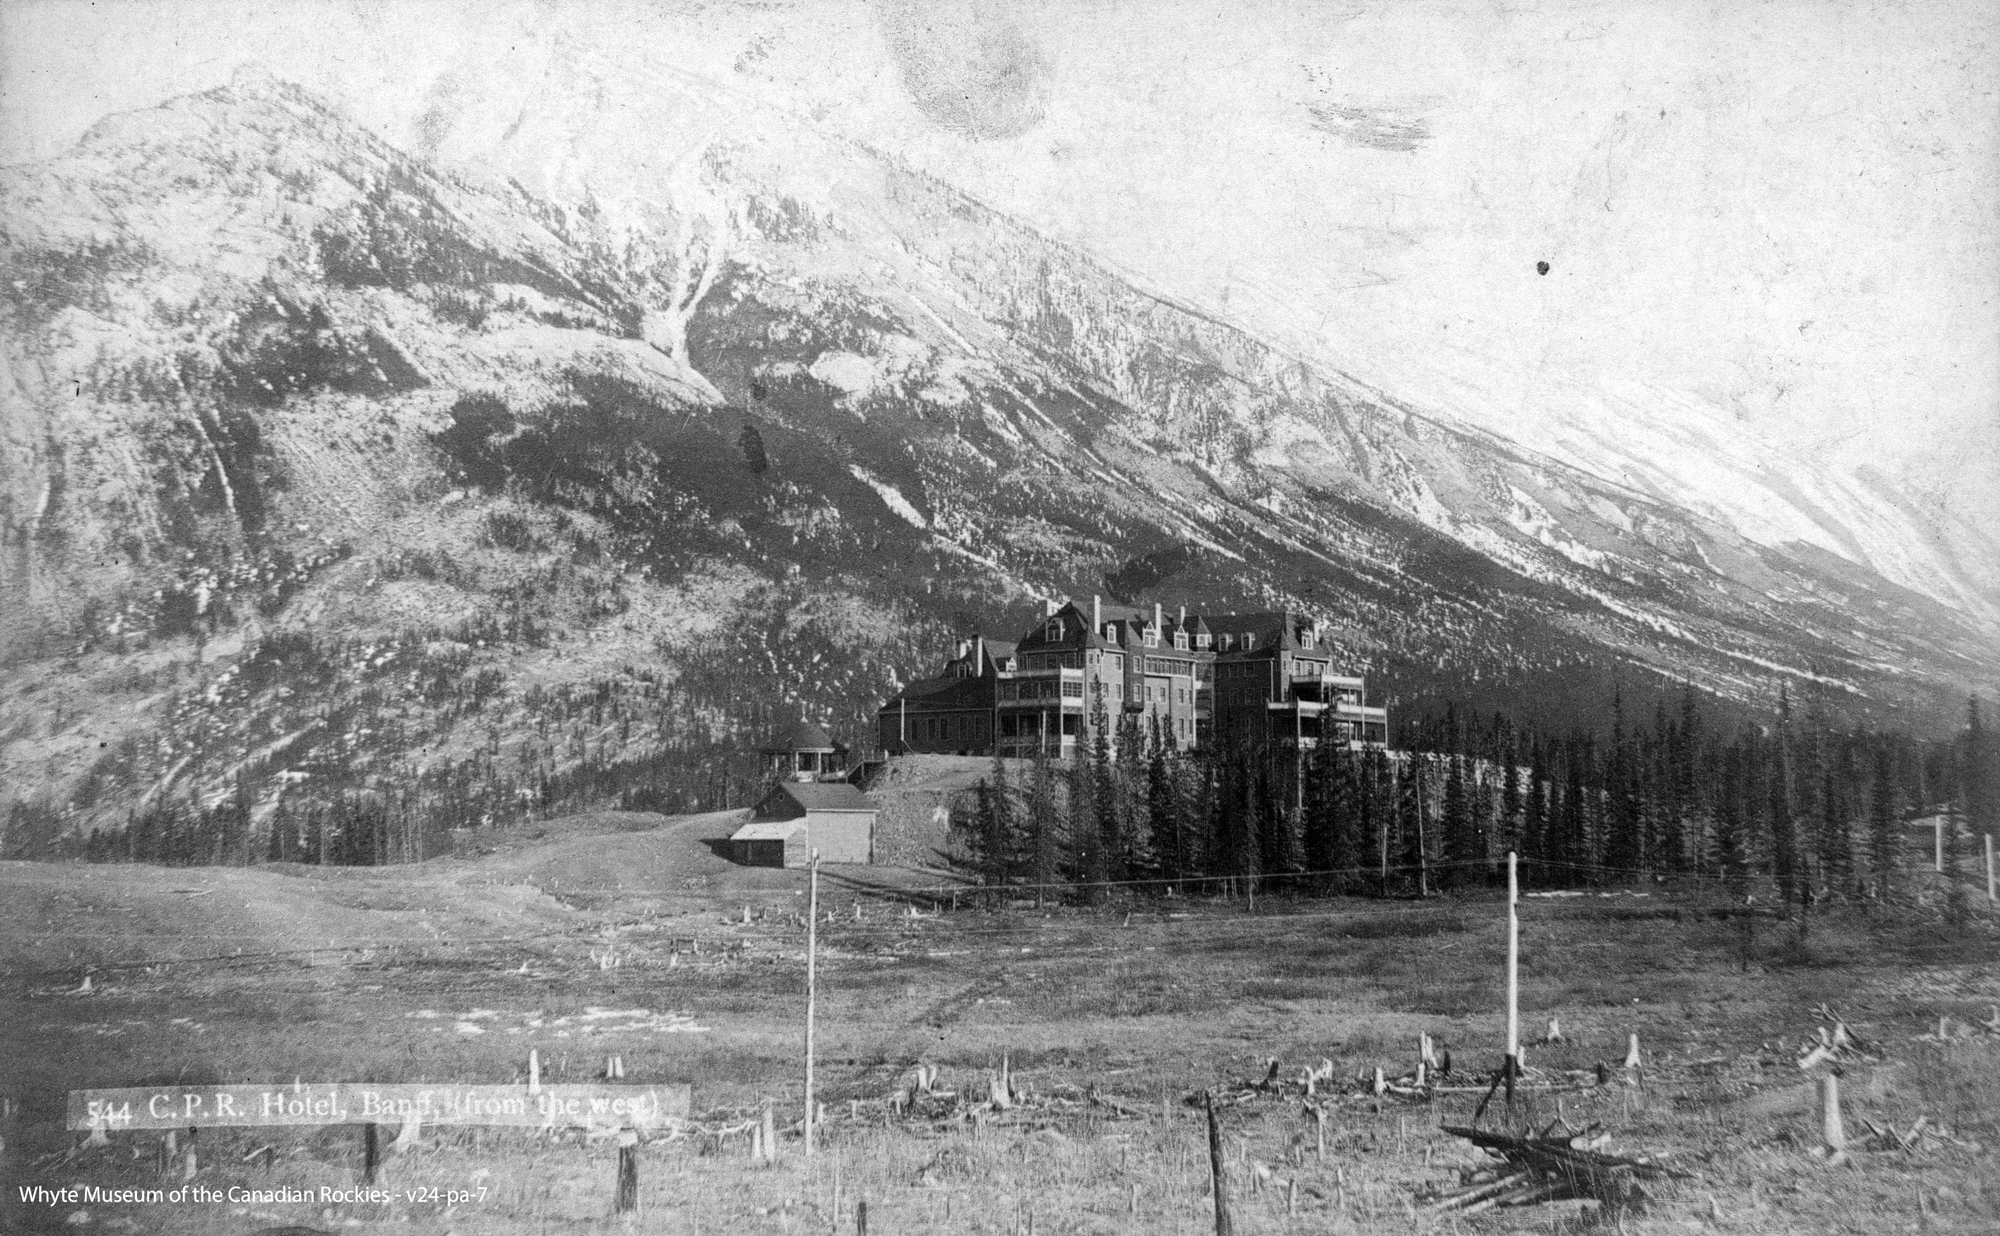 A forest fire in the late 1800's resulted in significantly less forest cover compared with today's landscape - as seen here when the Banff Springs Hotel was first built.